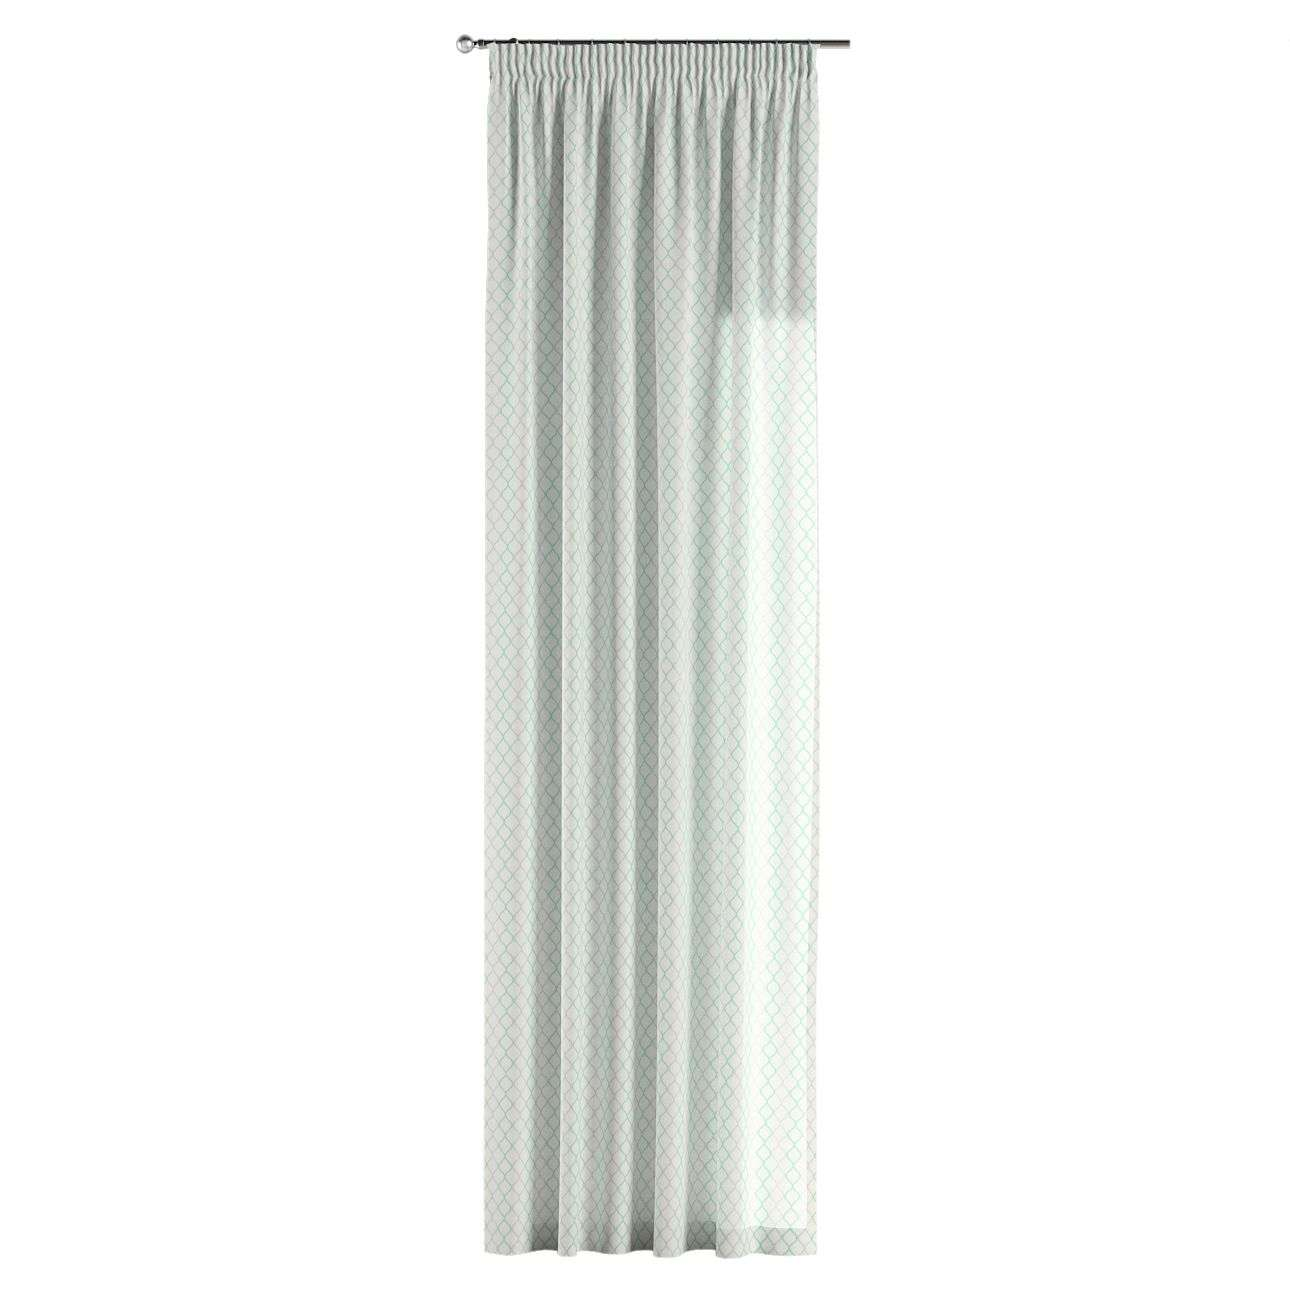 Pencil pleat curtains 130 x 260 cm (51 x 102 inch) in collection Geometric, fabric: 141-47